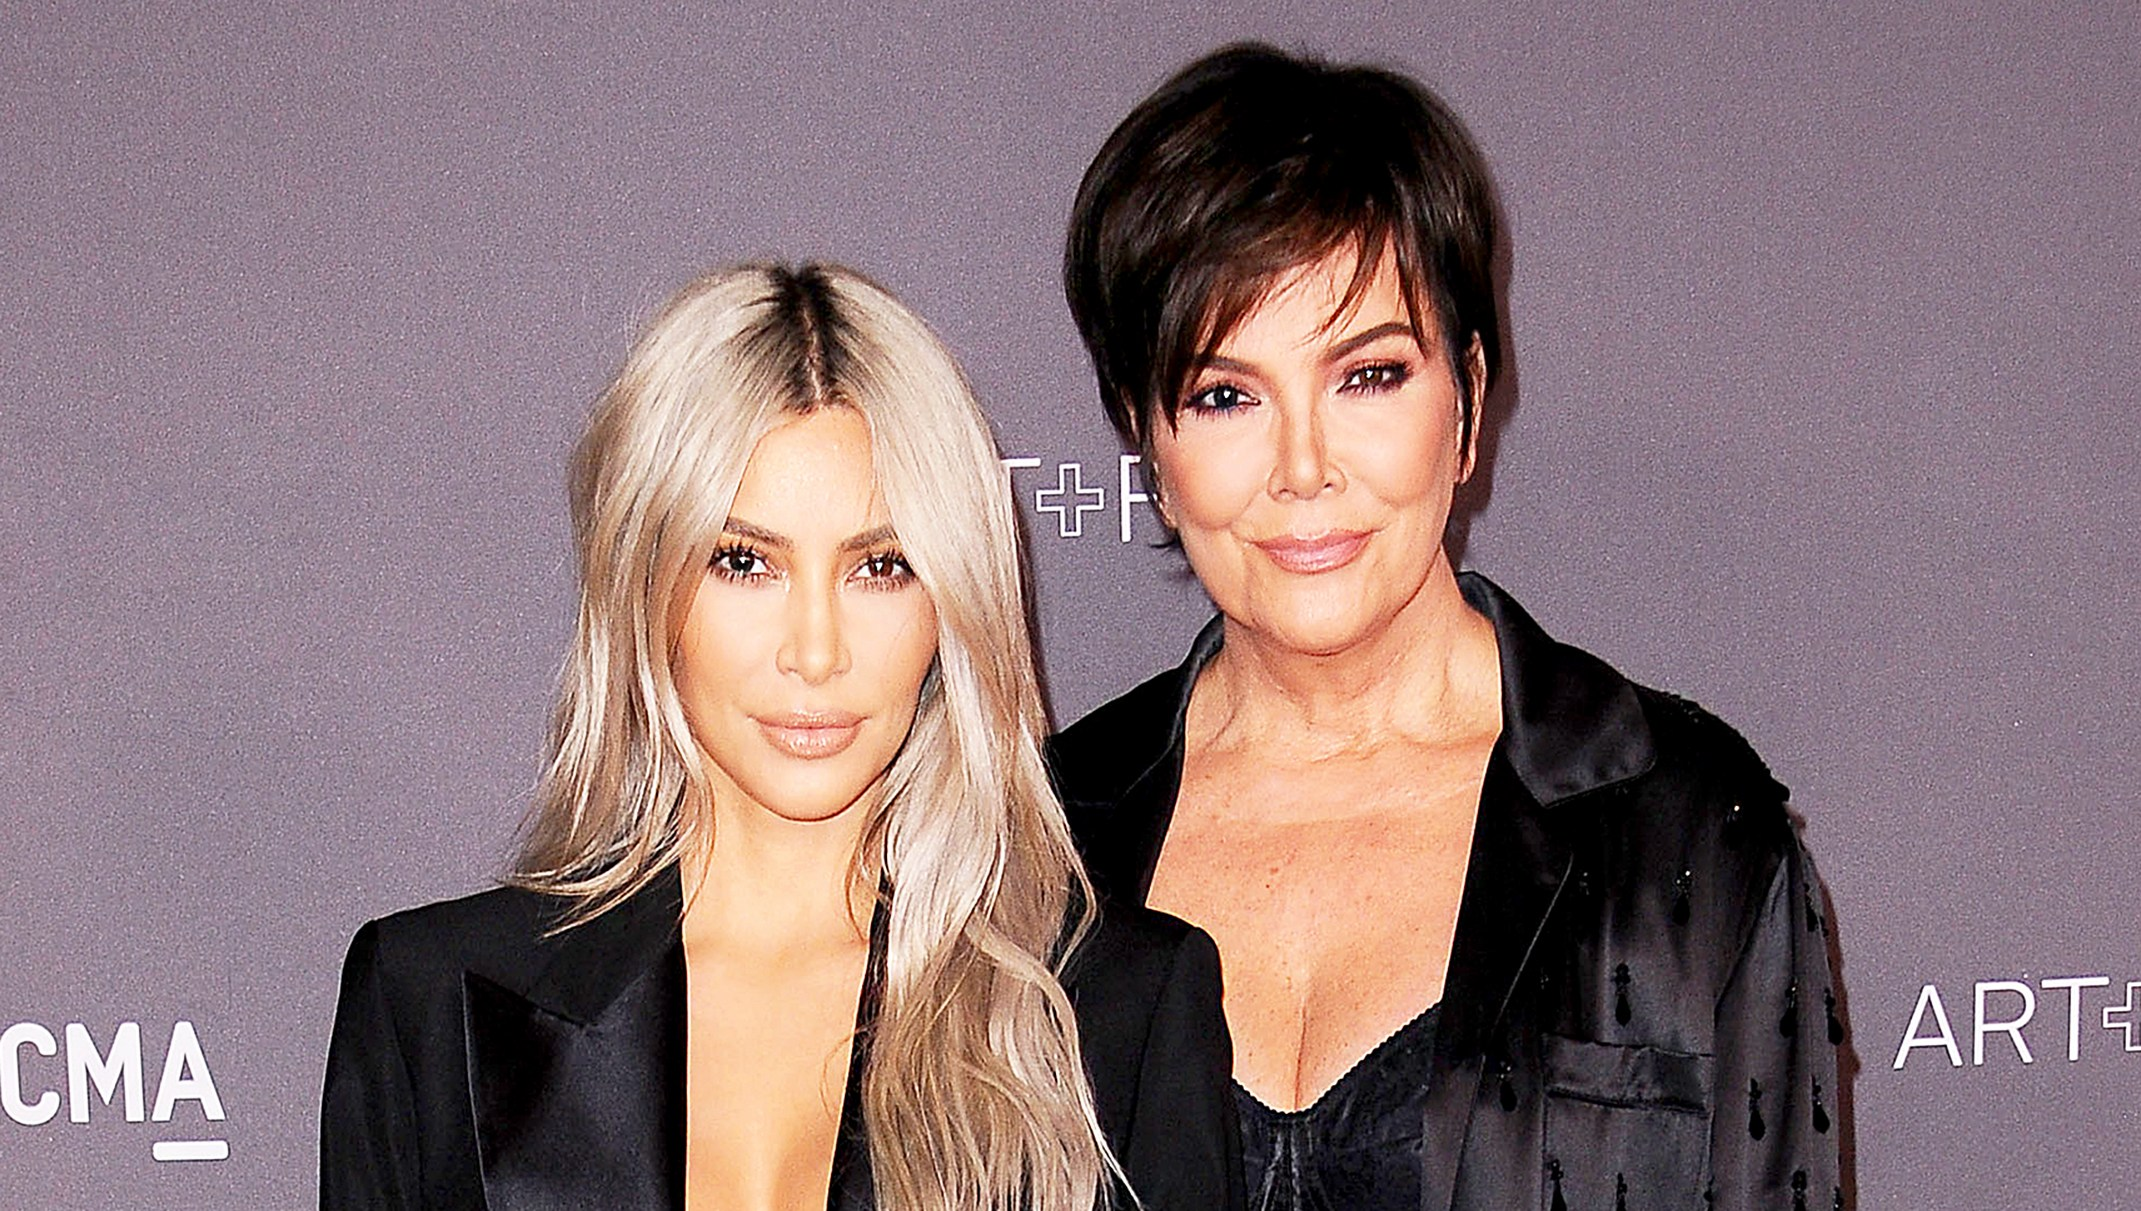 Kim Kardashian and Kris Jenner attend the 2017 LACMA Art + Film gala at LACMA in Los Angeles, California.